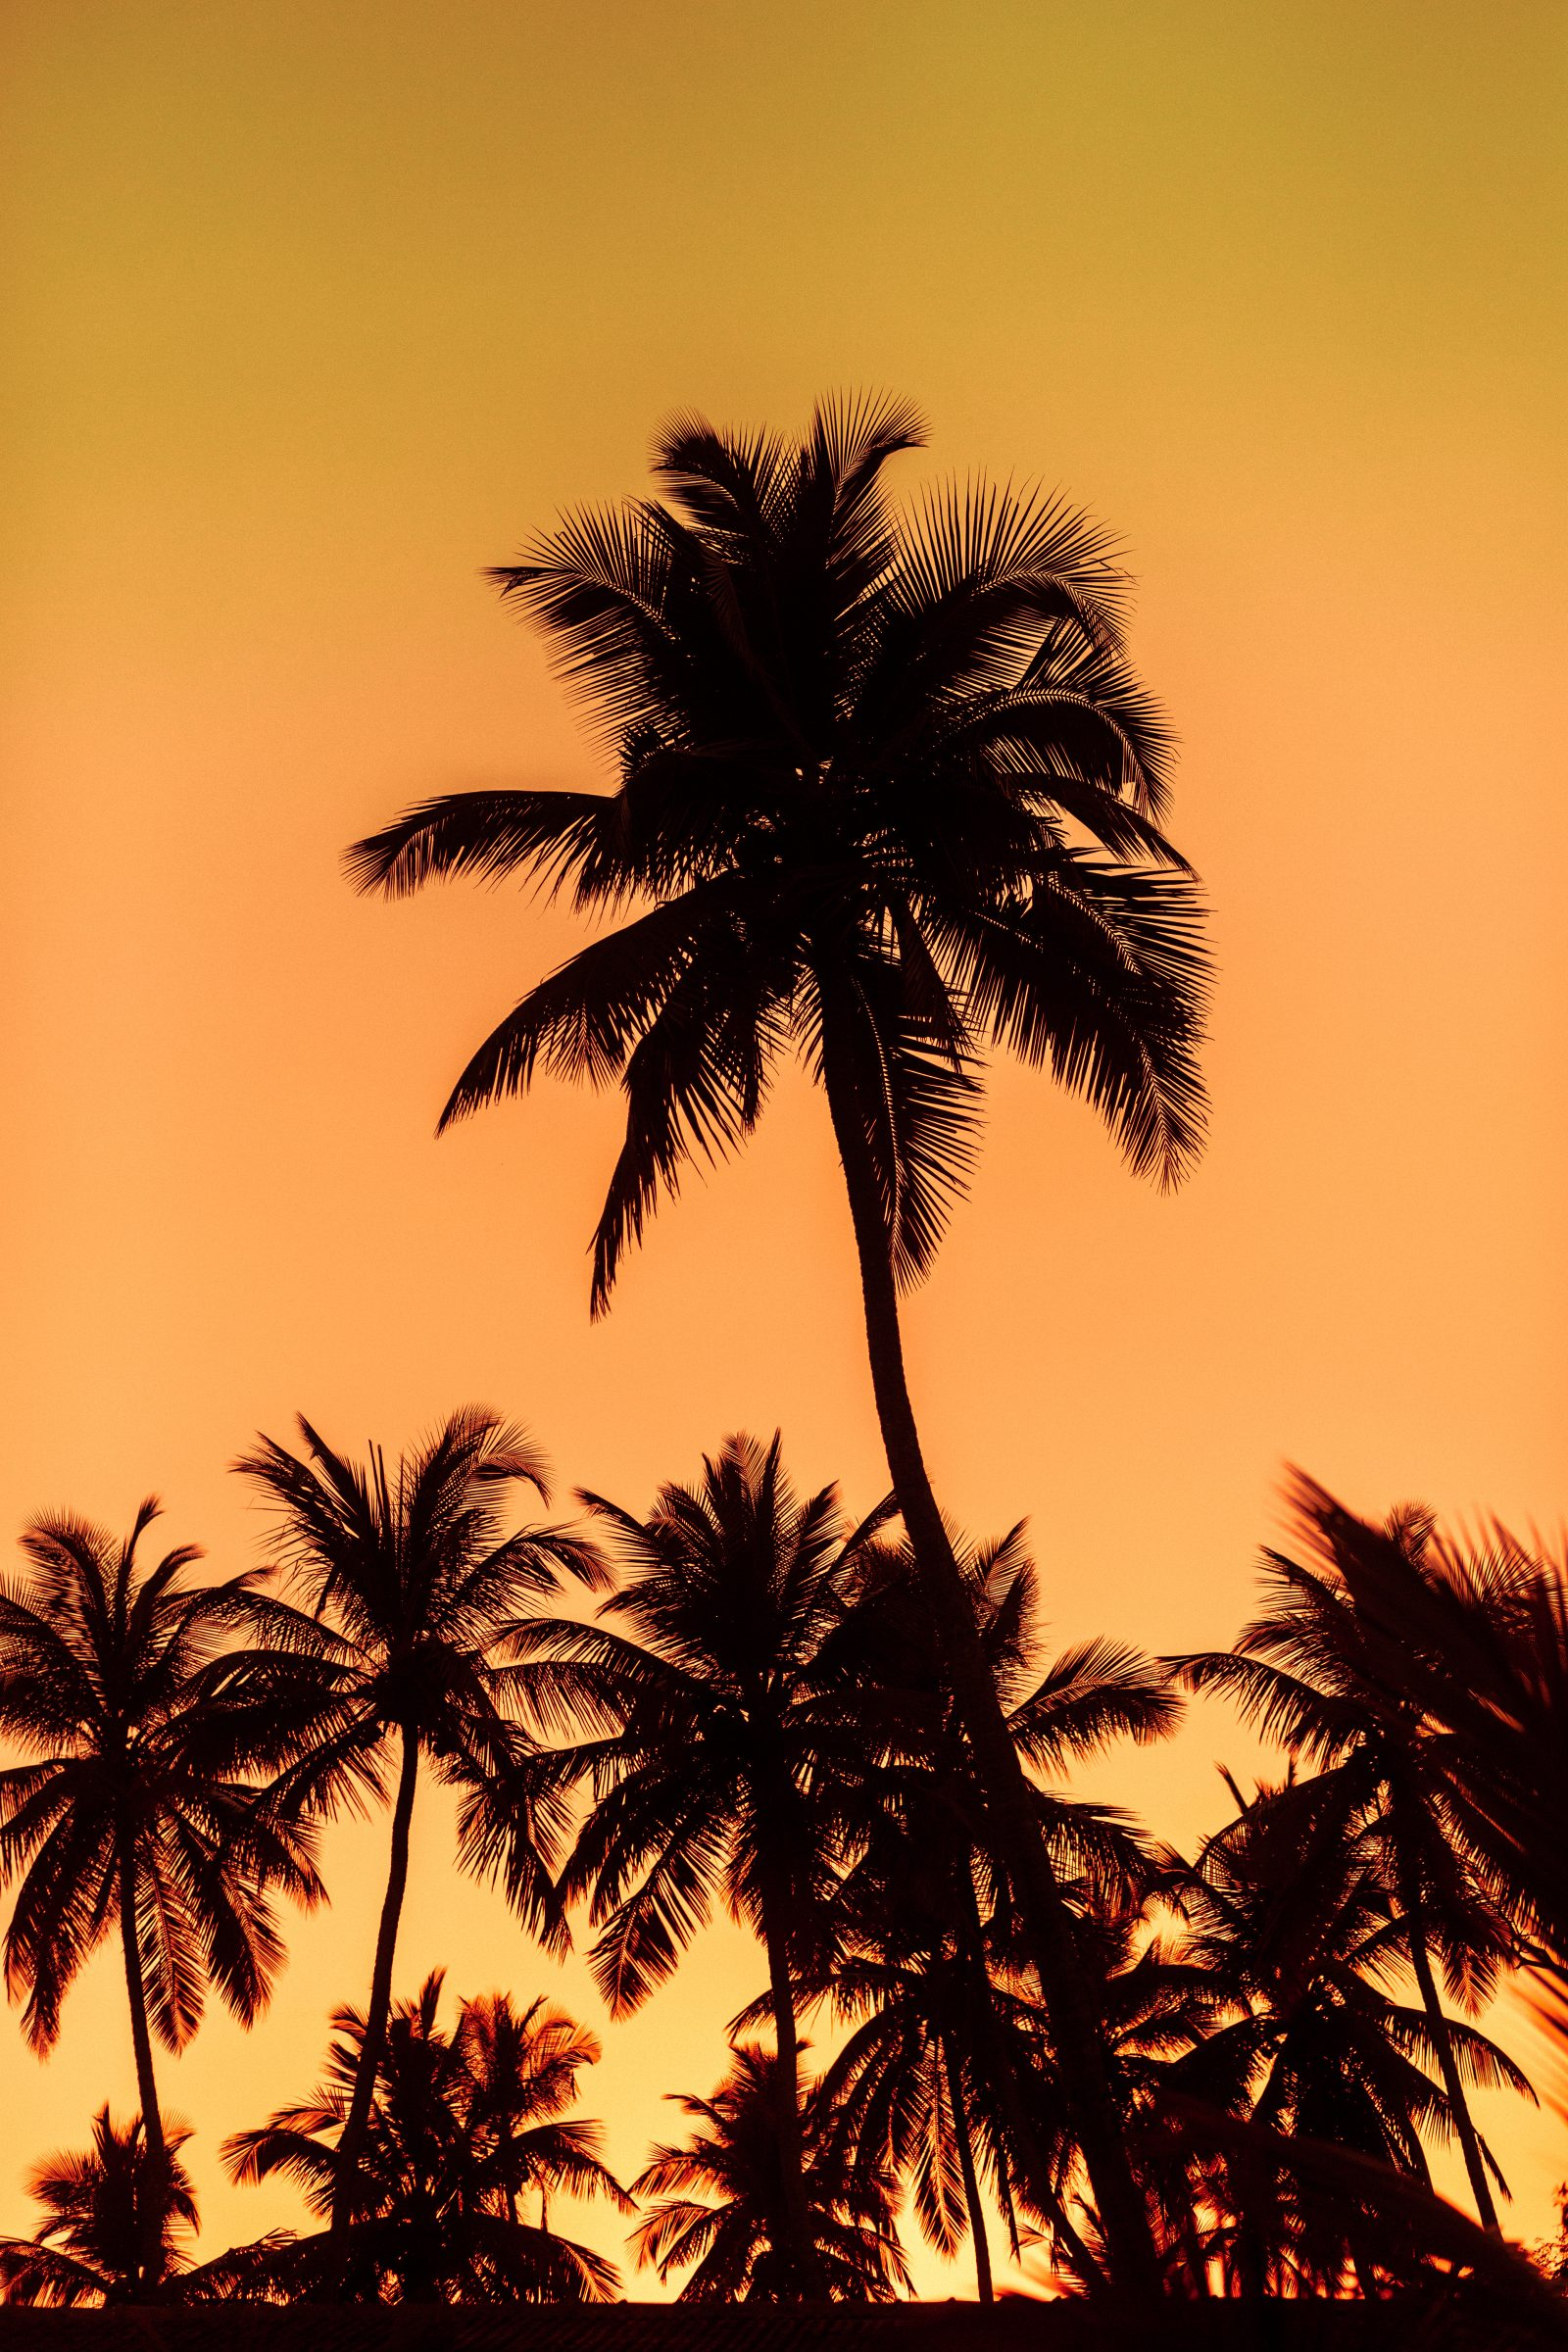 Sunset on the palms